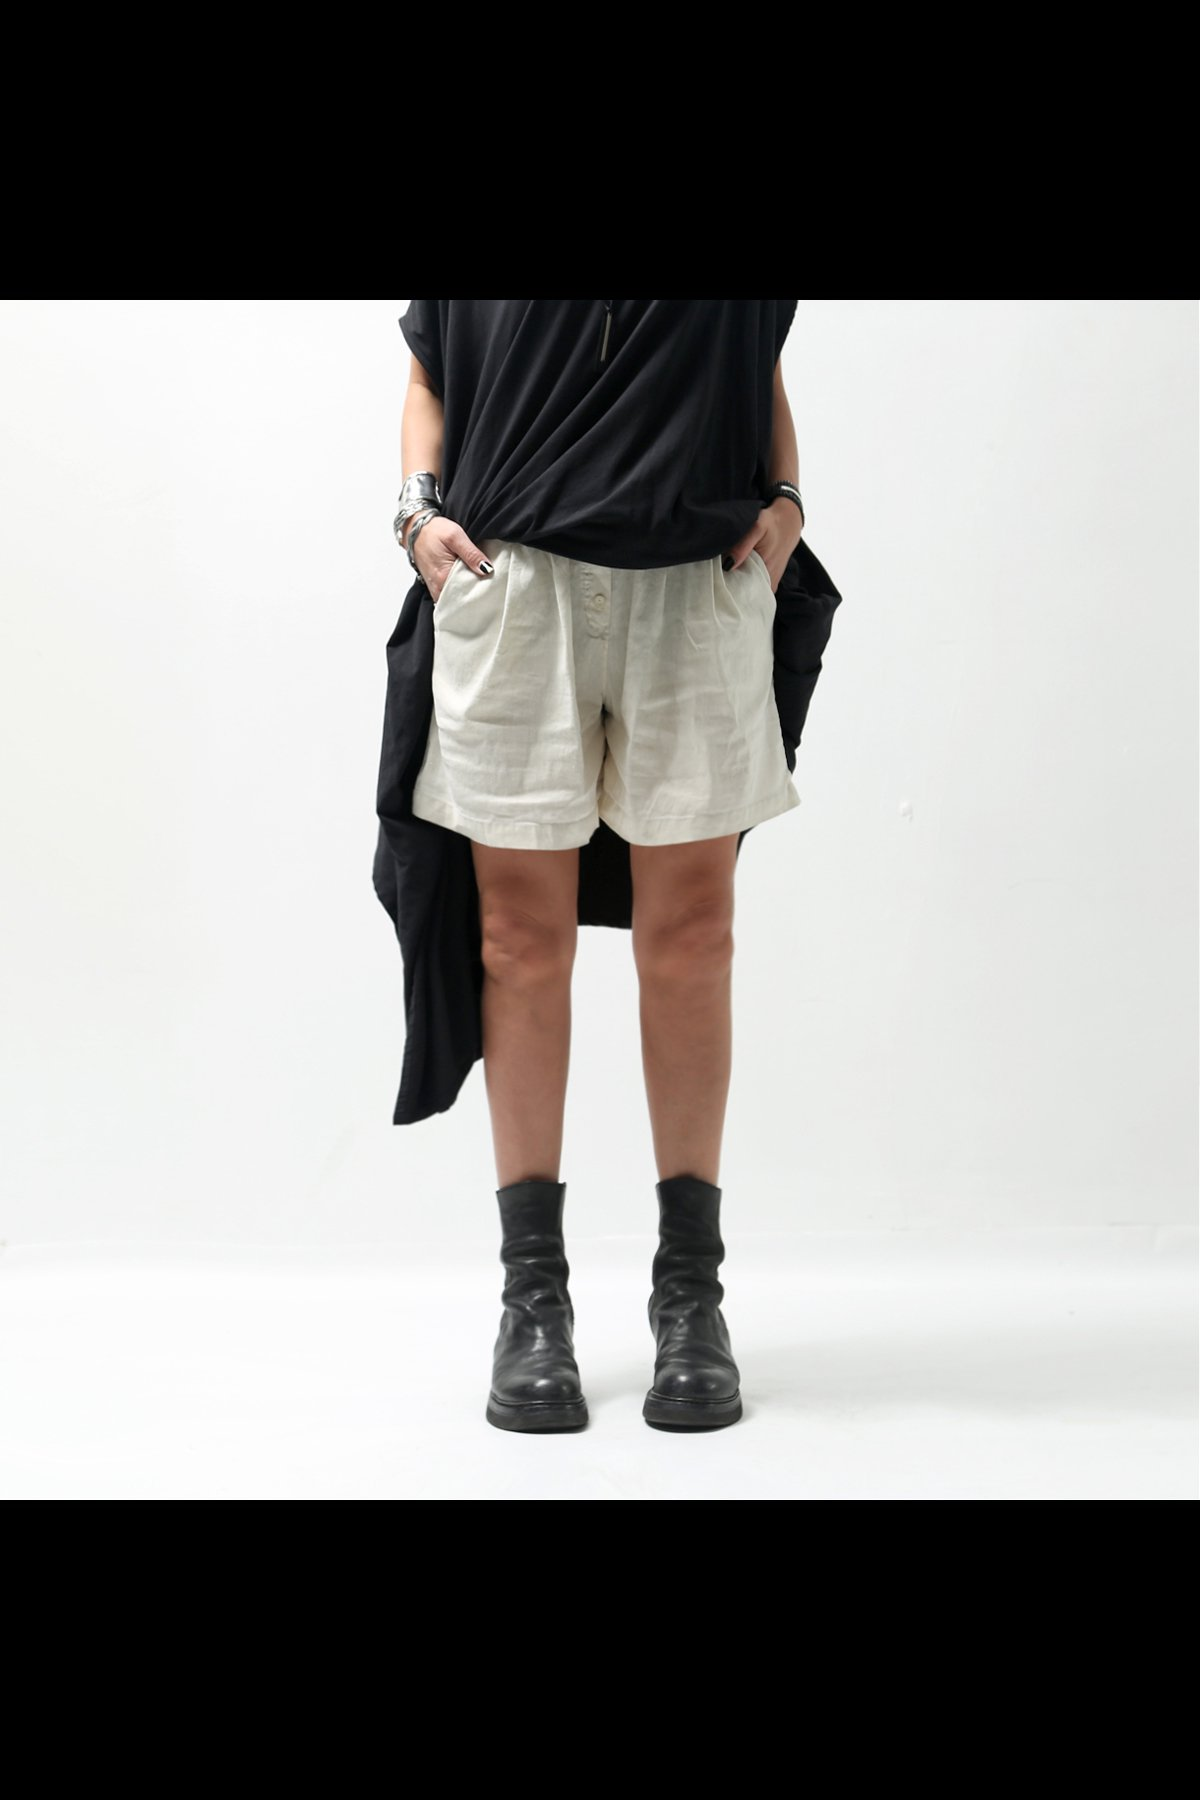 <img class='new_mark_img1' src='https://img.shop-pro.jp/img/new/icons8.gif' style='border:none;display:inline;margin:0px;padding:0px;width:auto;' />STRETCH COTTON LINEN SHORT PANTS 535LOS_OFF WHITE